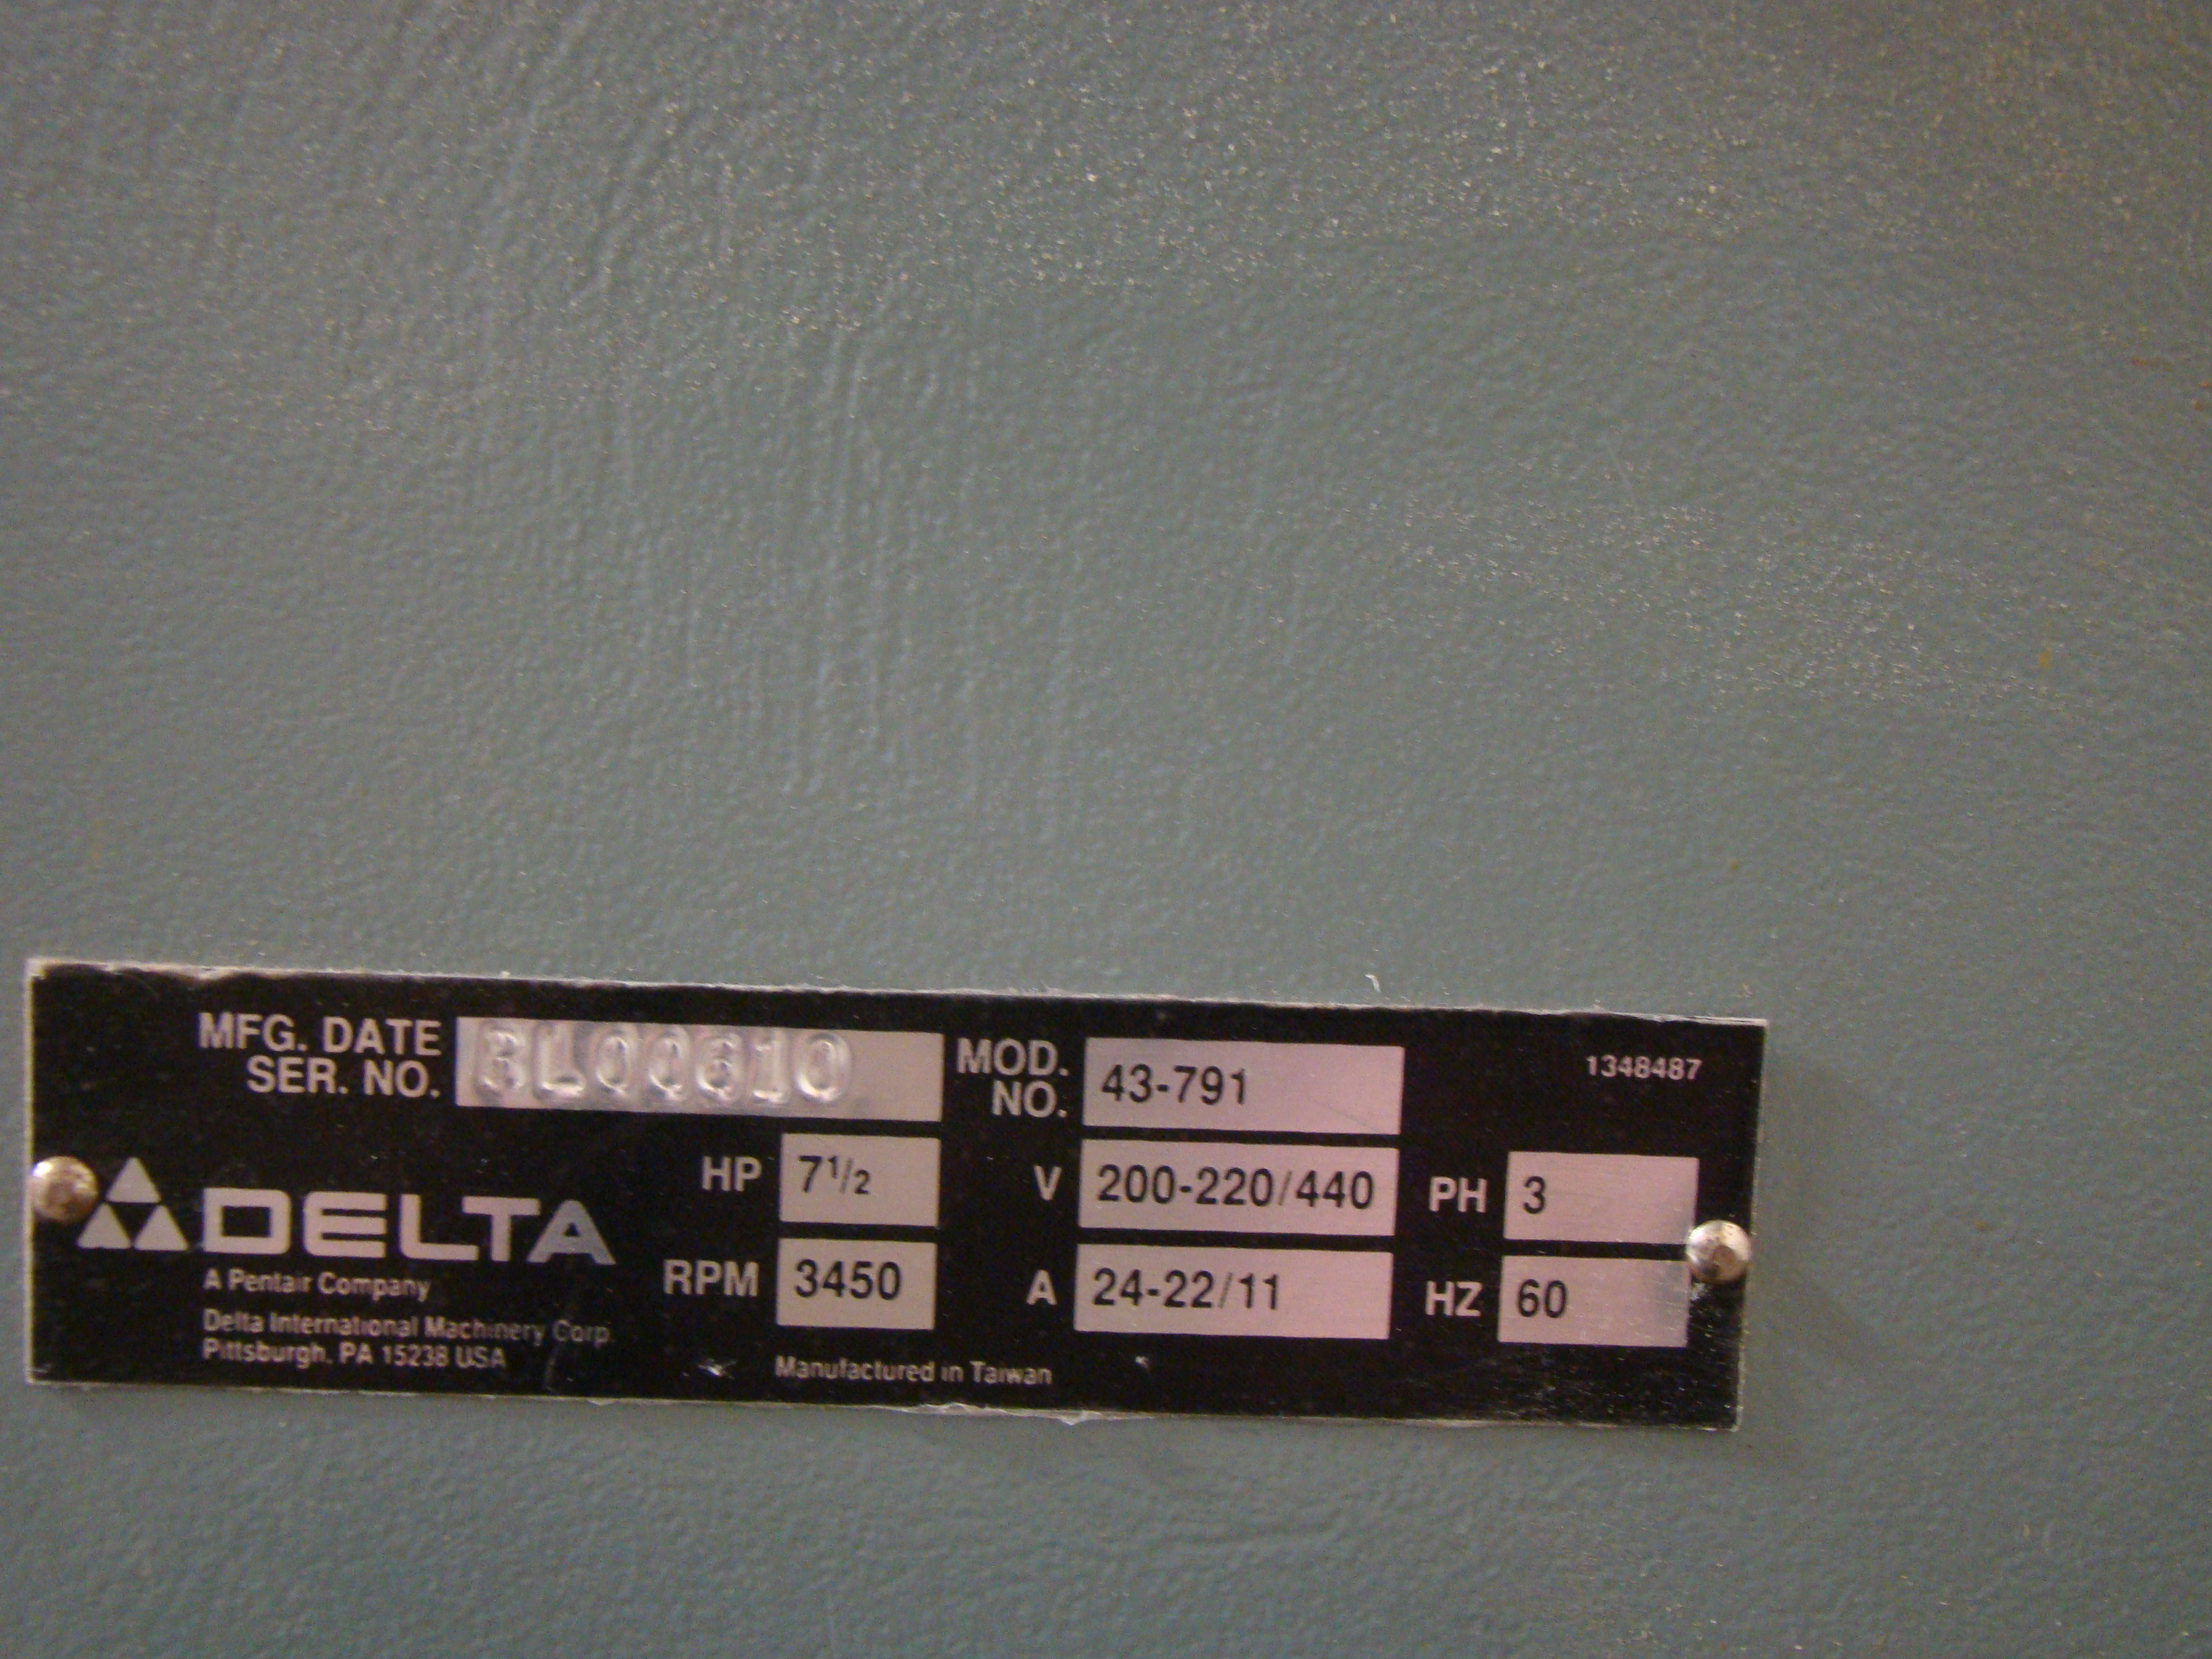 """Delta Wood Shaper 43-791 5 speed 1-1/4"""" Spindle 7.5 HP 200-220/440 Volt 3PH - Image 5 of 6"""